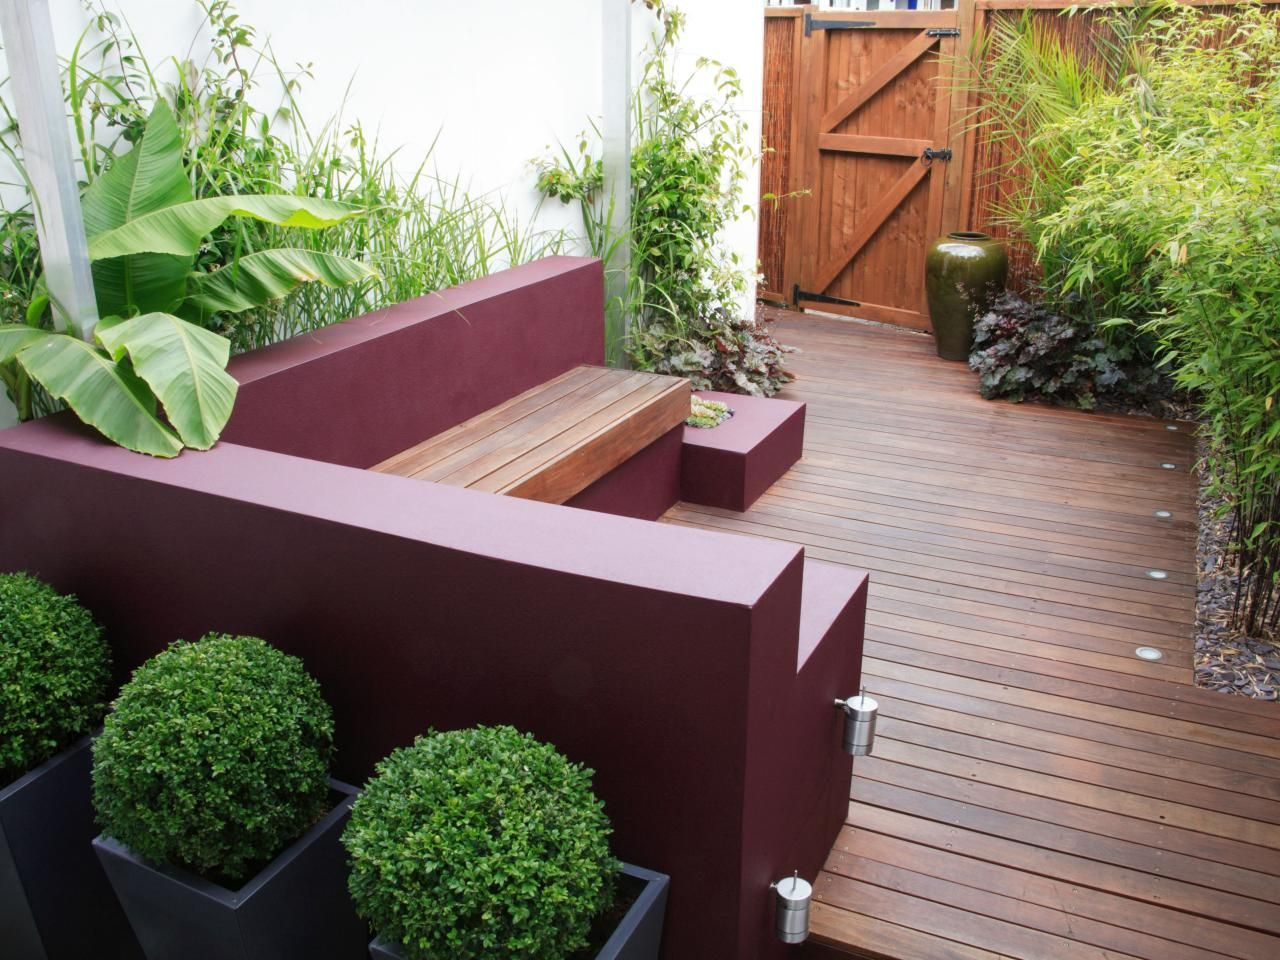 Pictures And Tips For Small Patios Outdoor Design Landscaping Ideas Porches Decks Patios Hgtv Small Yard Design